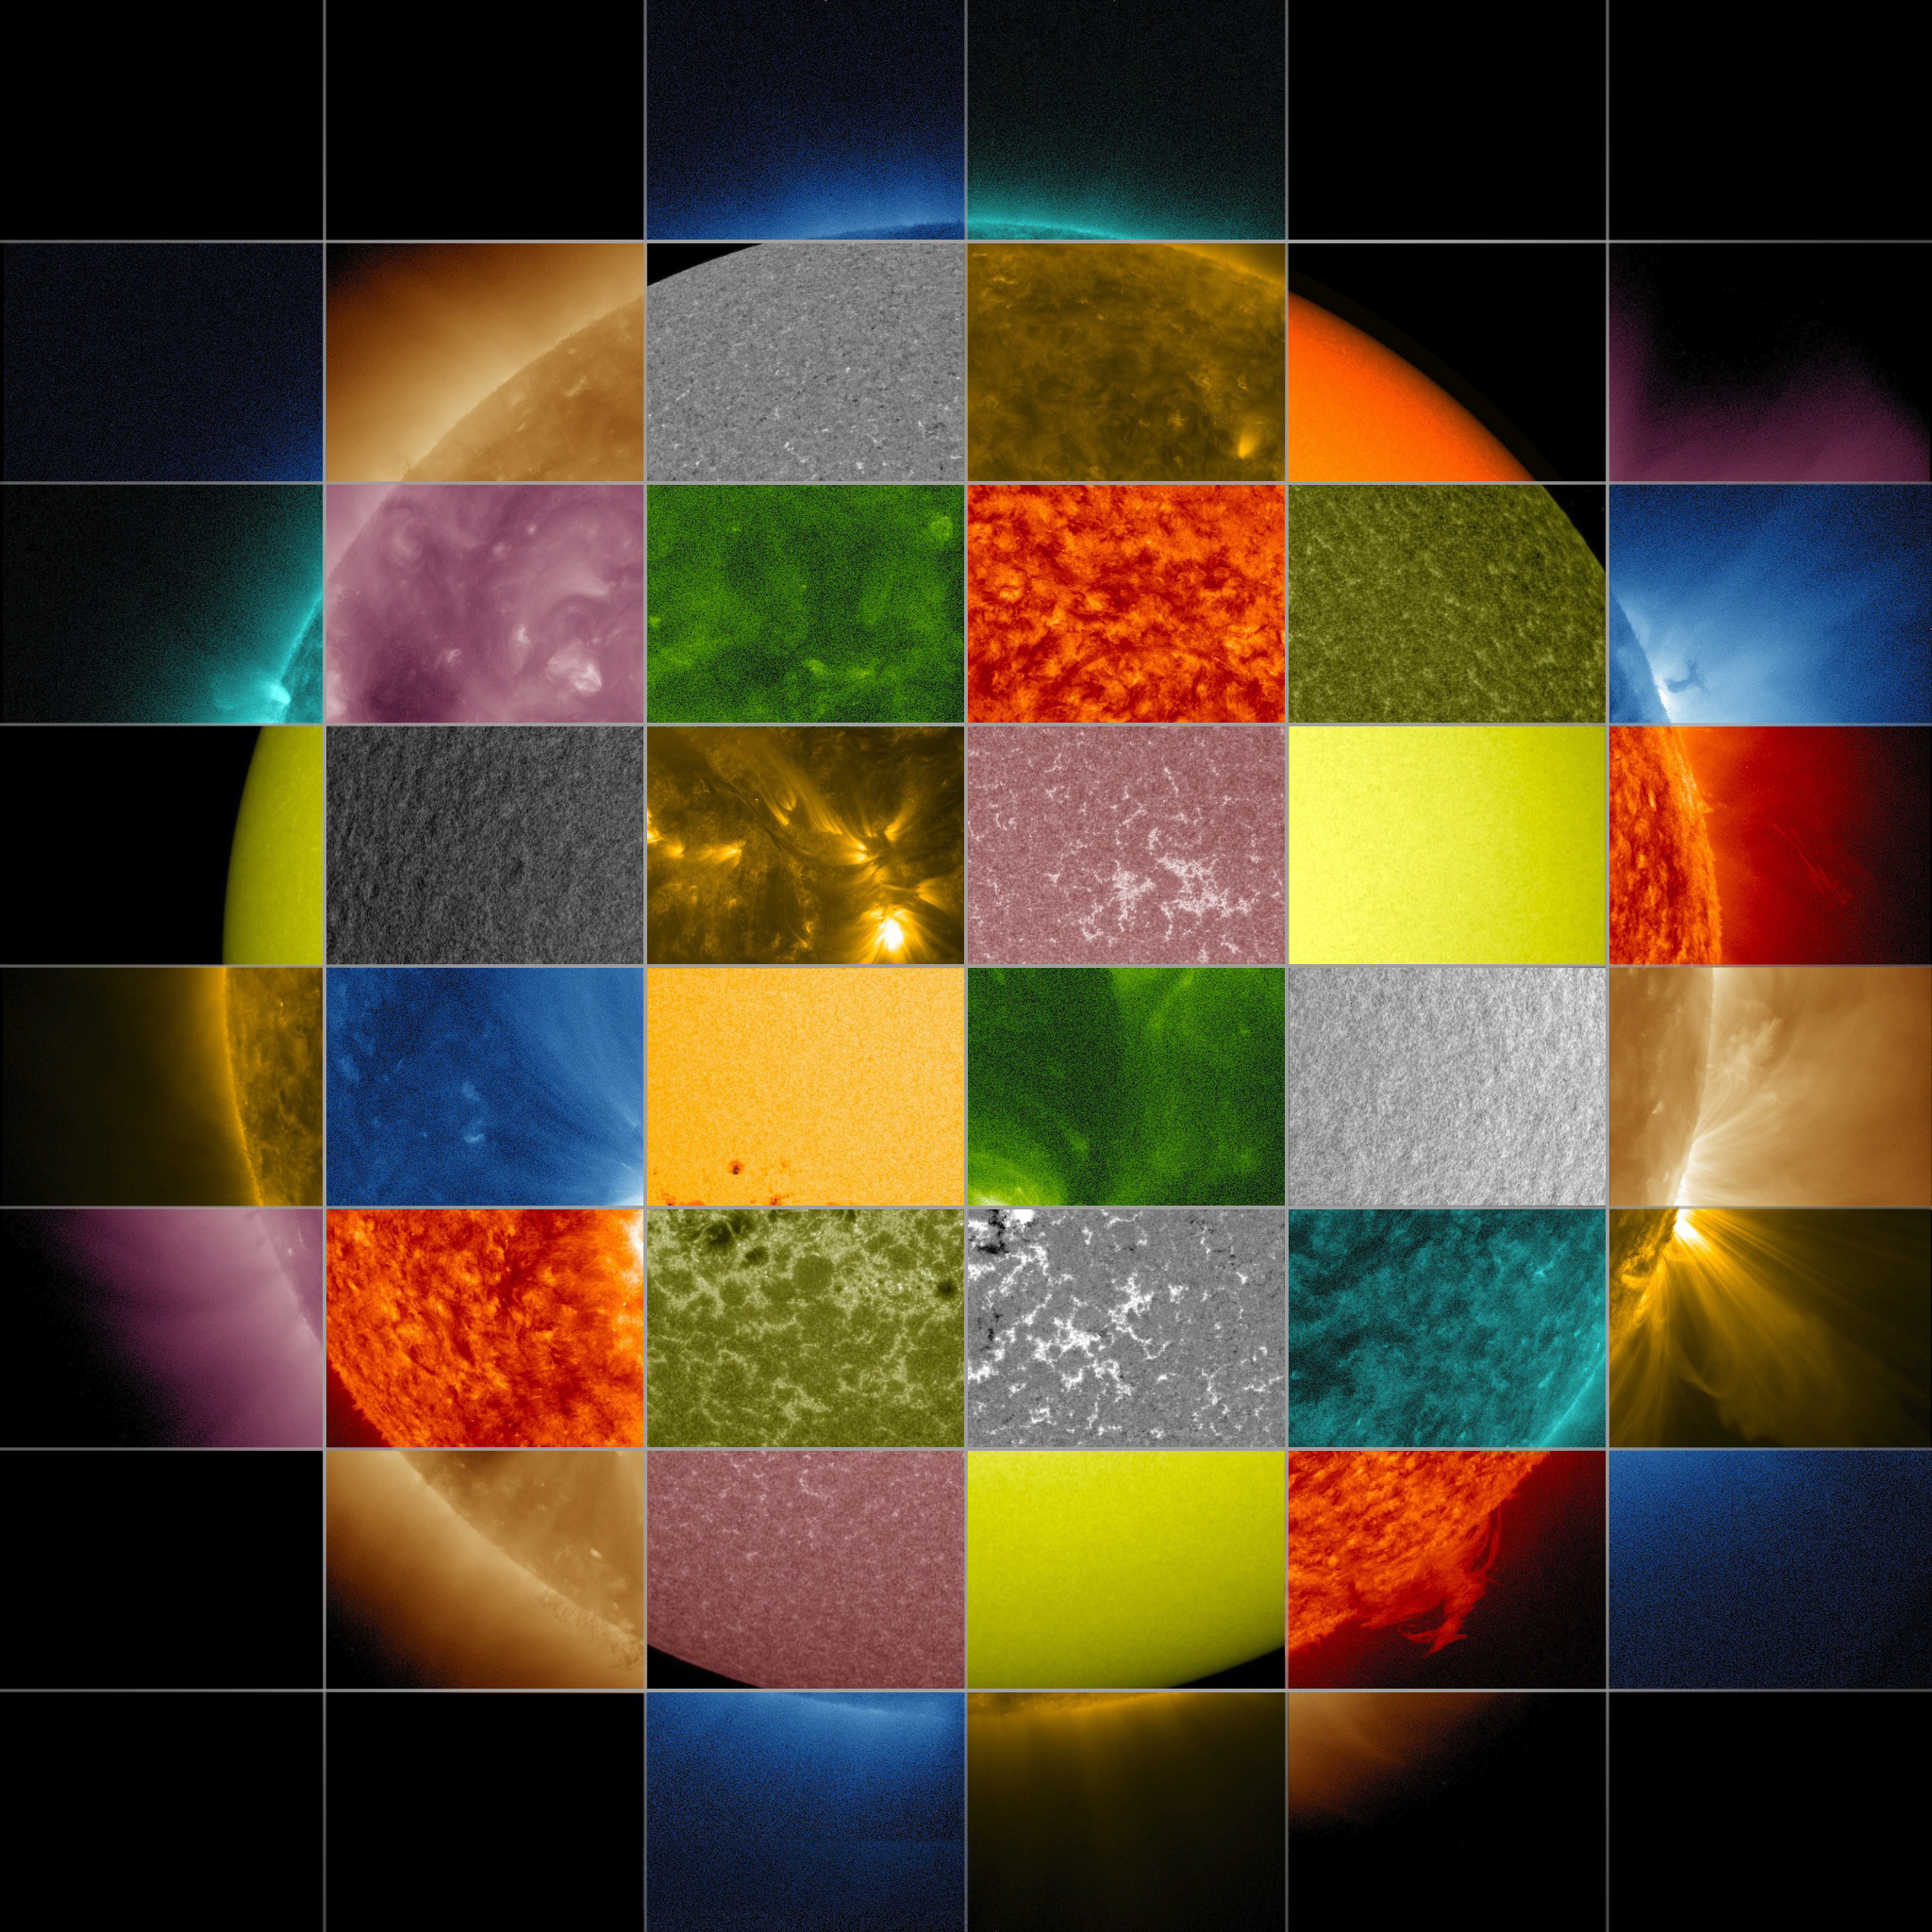 ... different wavelengths helps highlight different aspects of the sun's: www.nasa.gov/mission_pages/sunearth/news/light-wavelengths.html